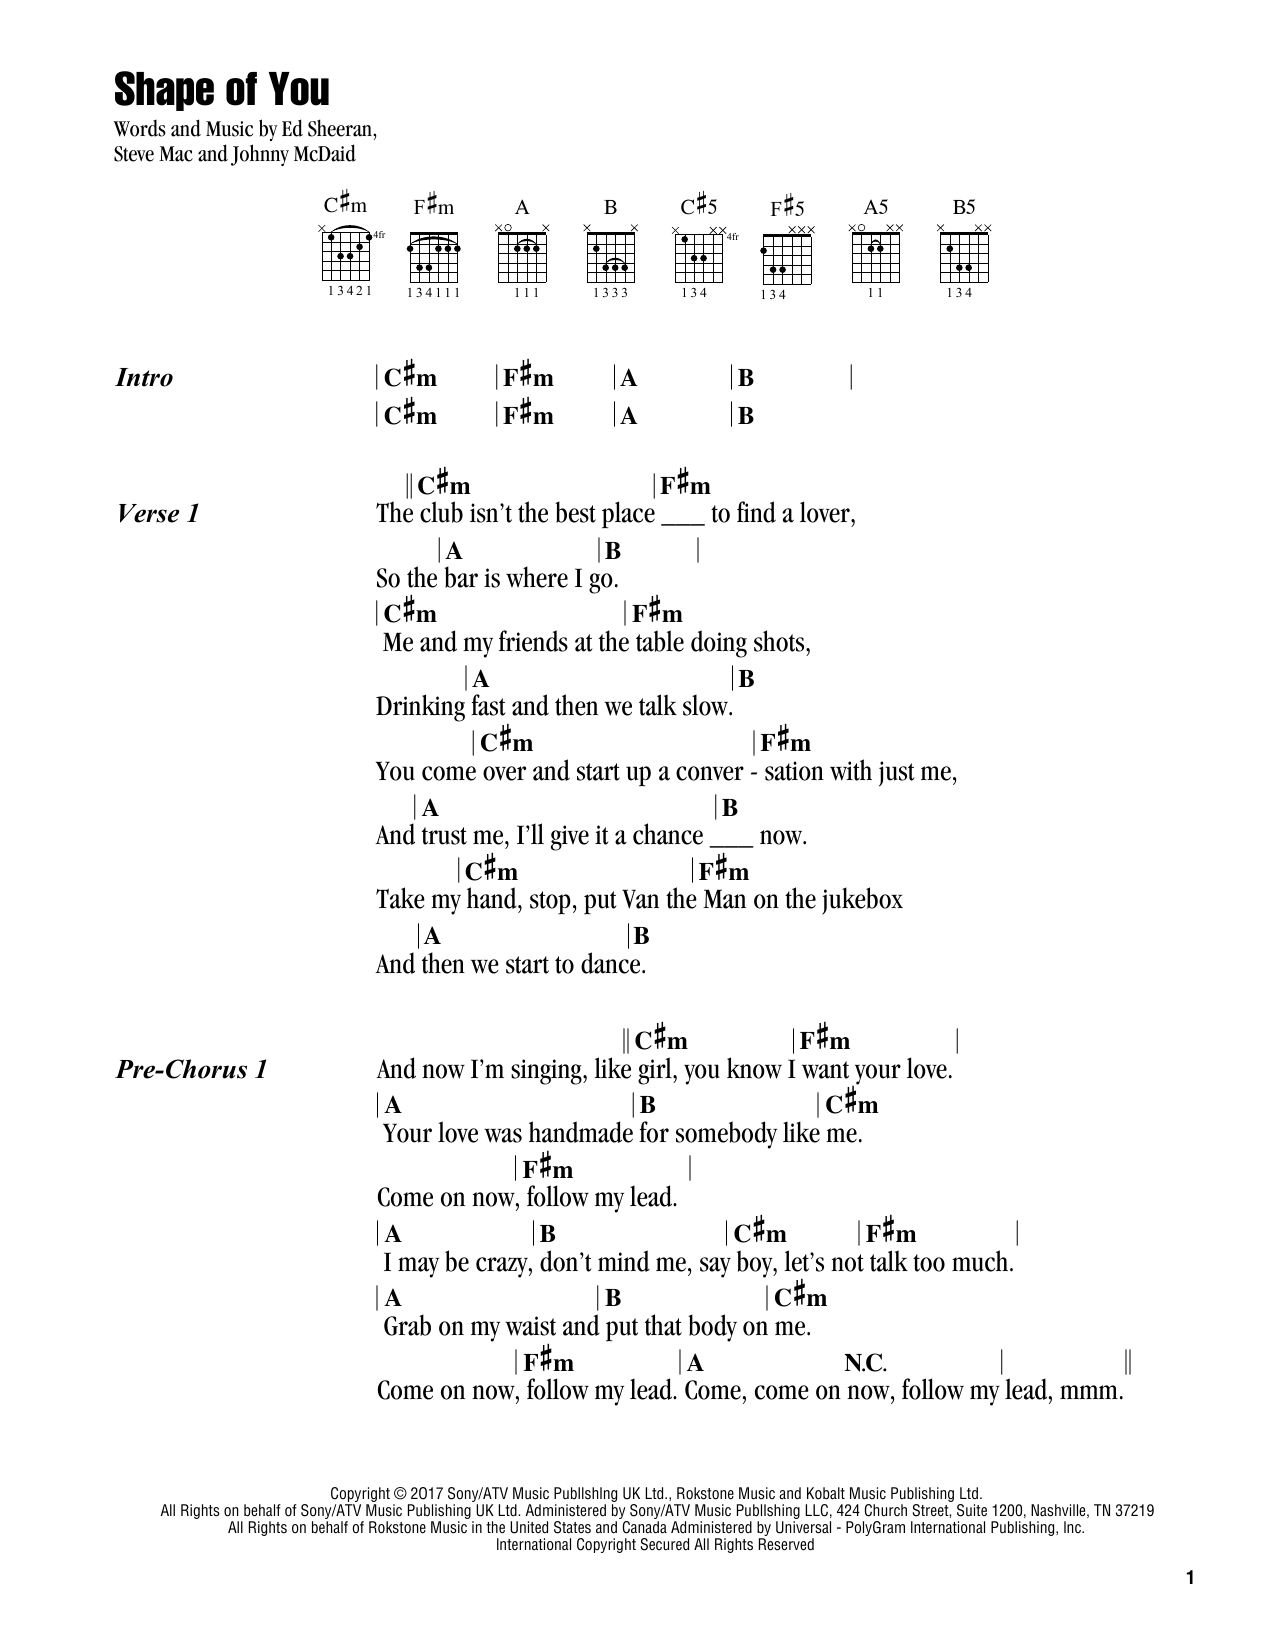 Shape of you sheet music by ed sheeran lyrics chords 178681 ed sheeran shape of you lyrics chords hexwebz Images